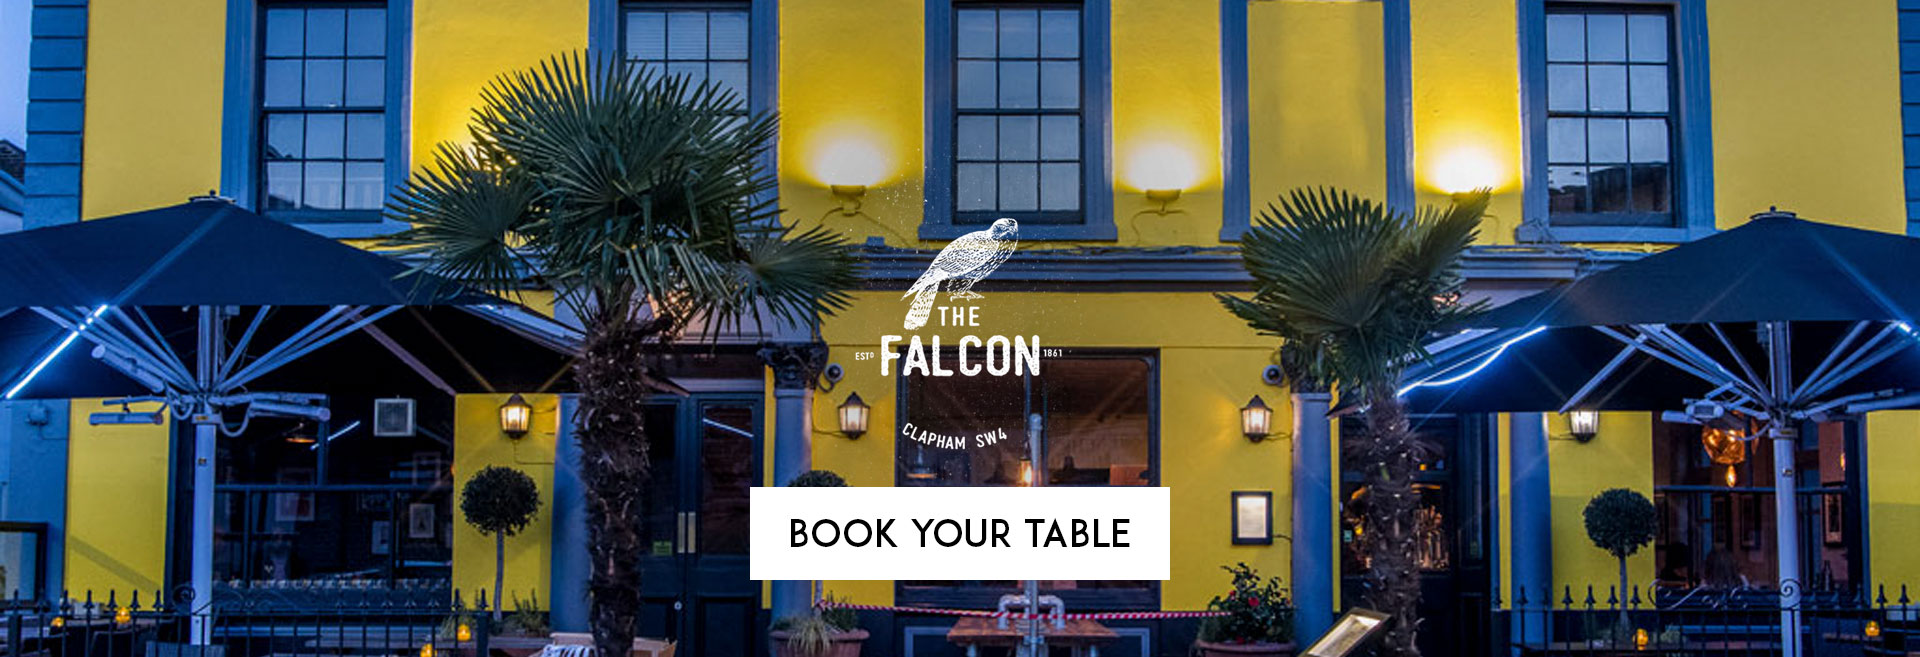 Book Your Table at The Falcon